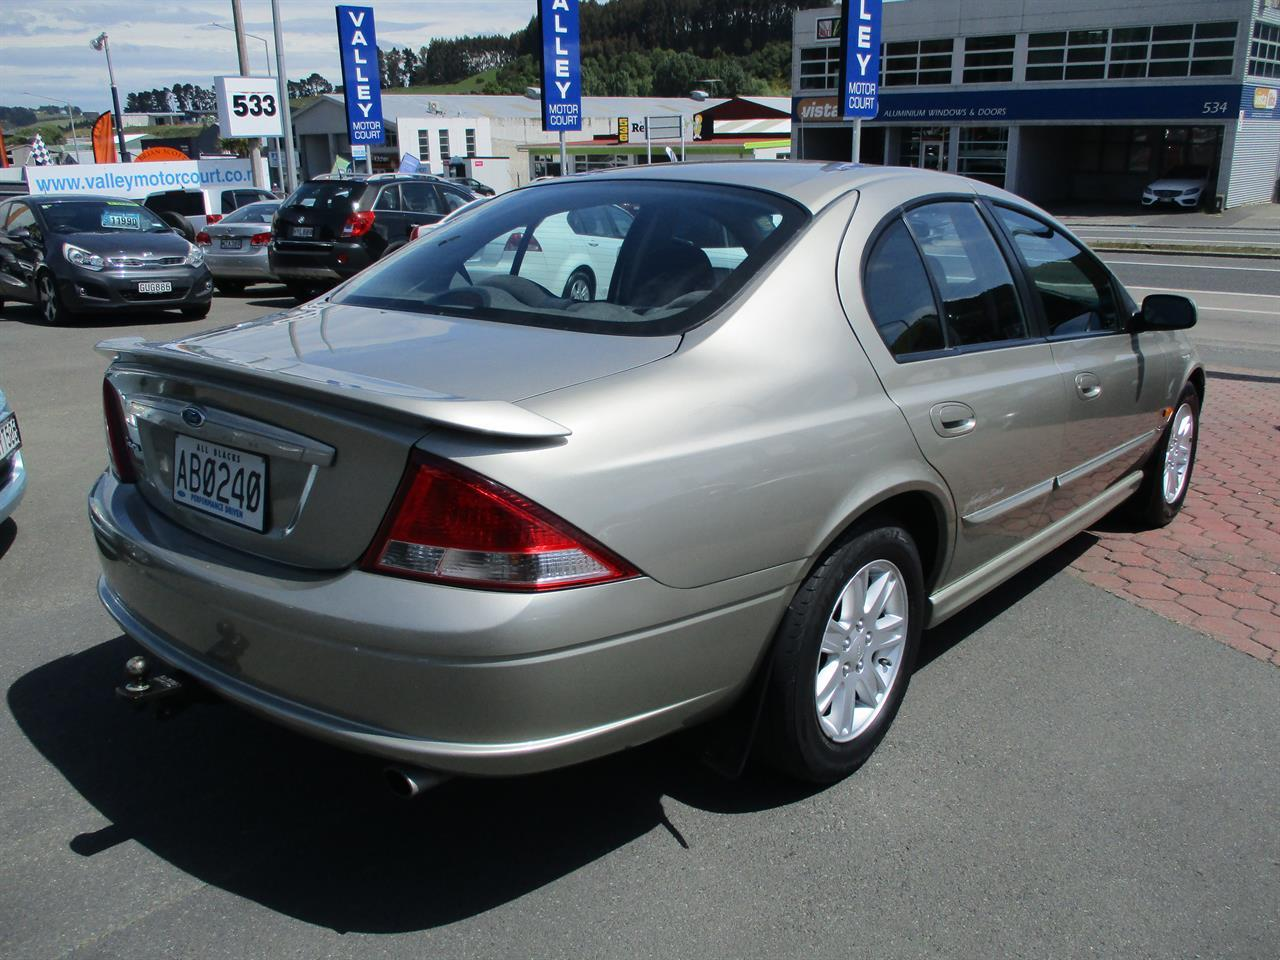 image-4, 2001 Ford Falcon AUII HERITAGE SERIES at Dunedin